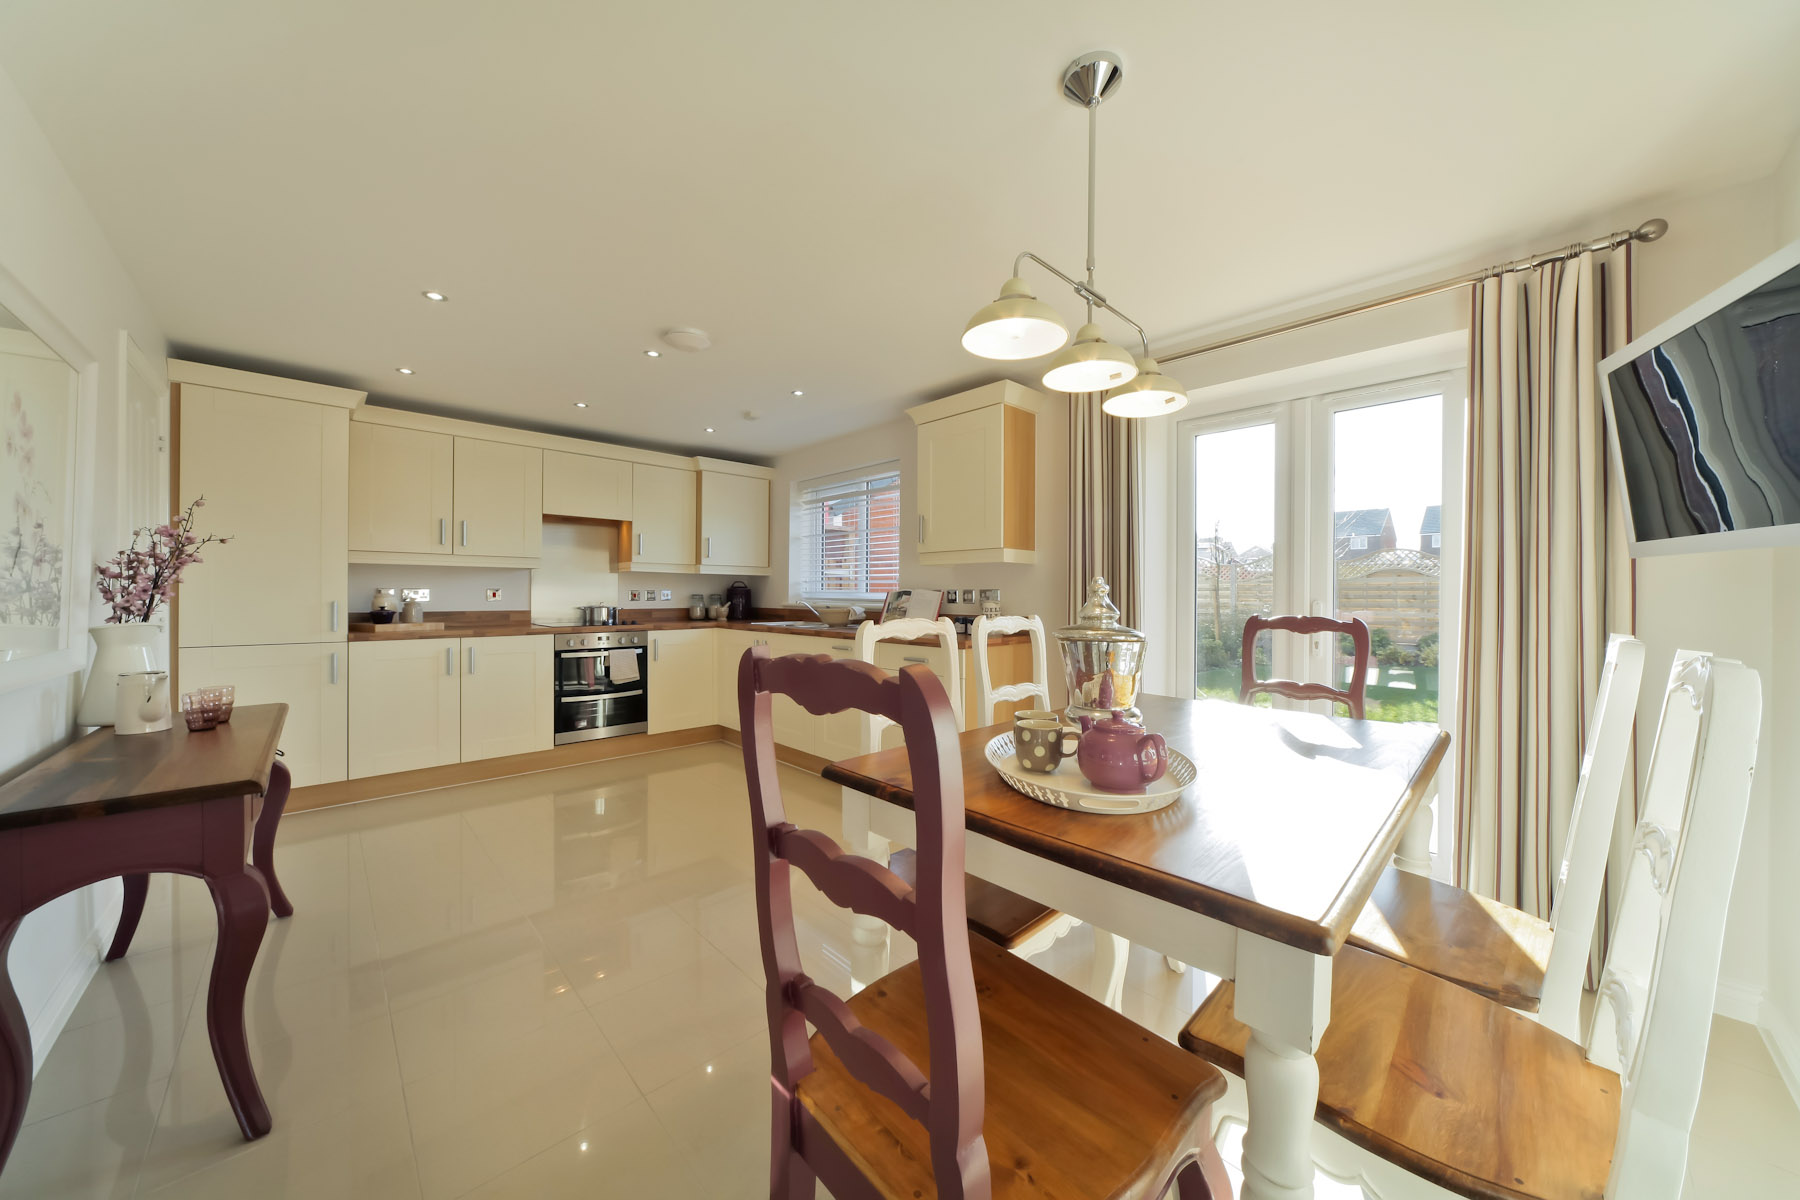 TW Exeter - Plumb Park - Knowle example kitchen 2